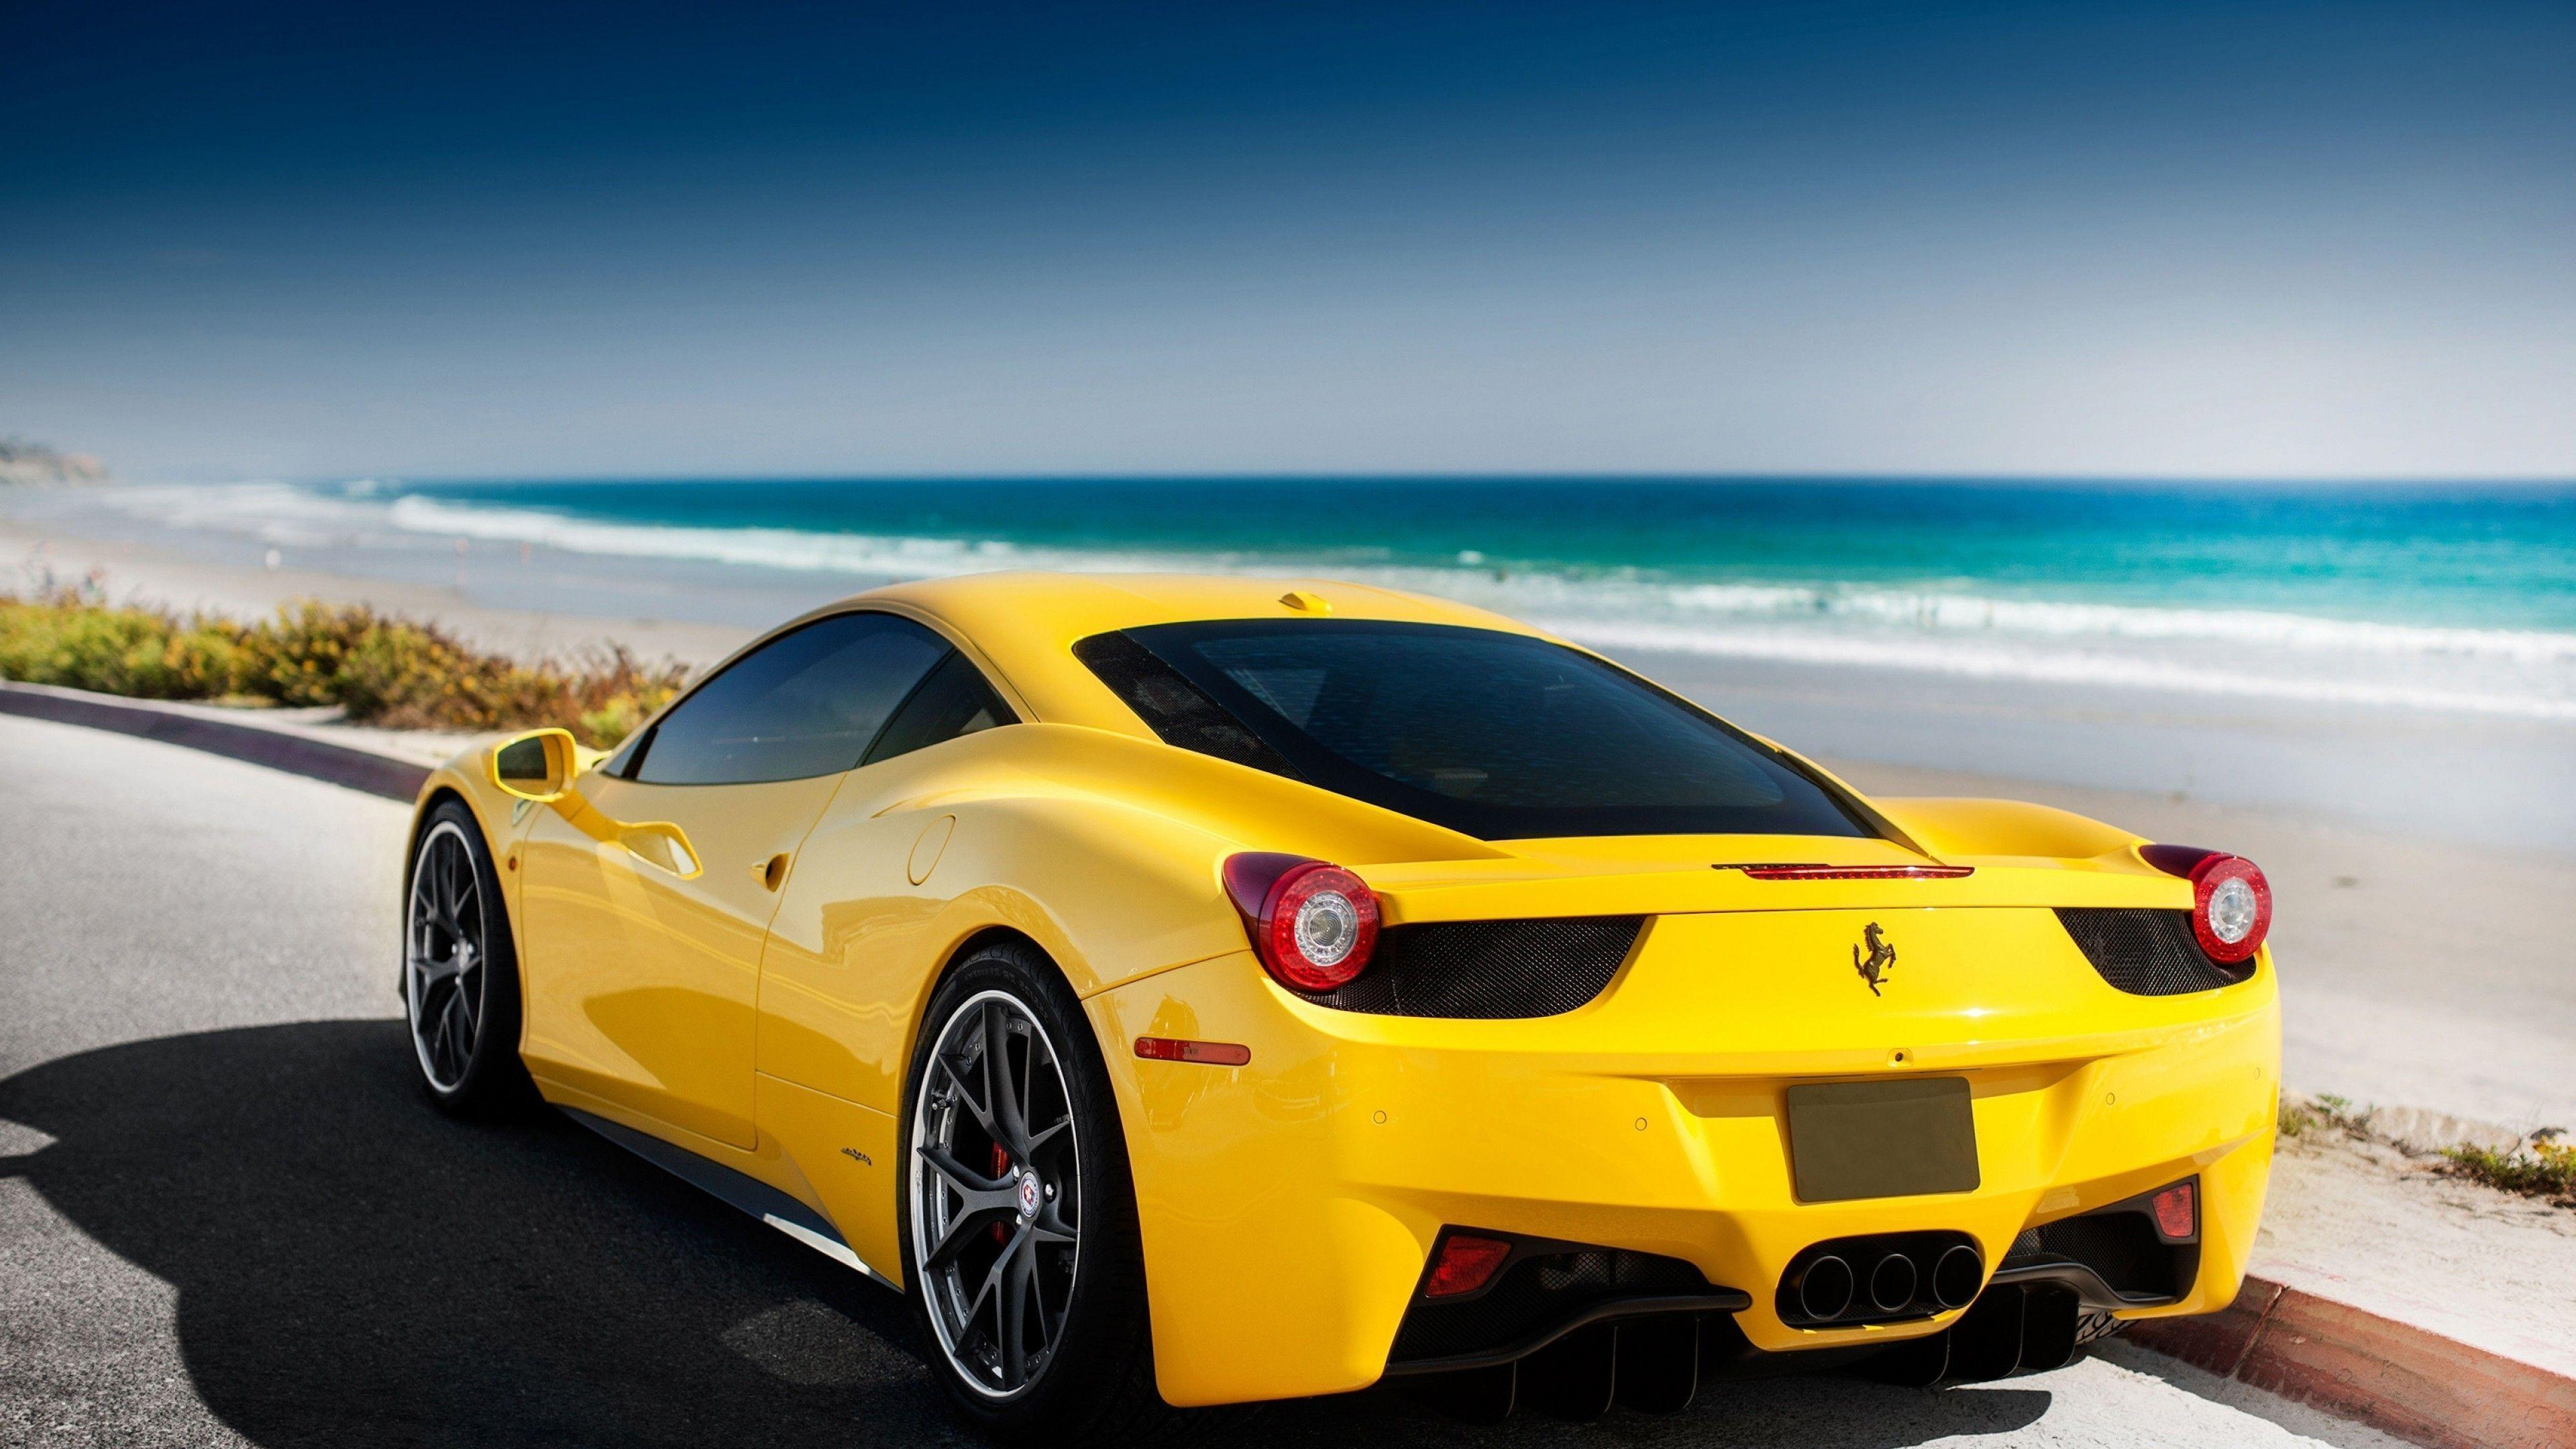 2017 Ferrari 458 Italia Wallpapers - Wallpaper Cave